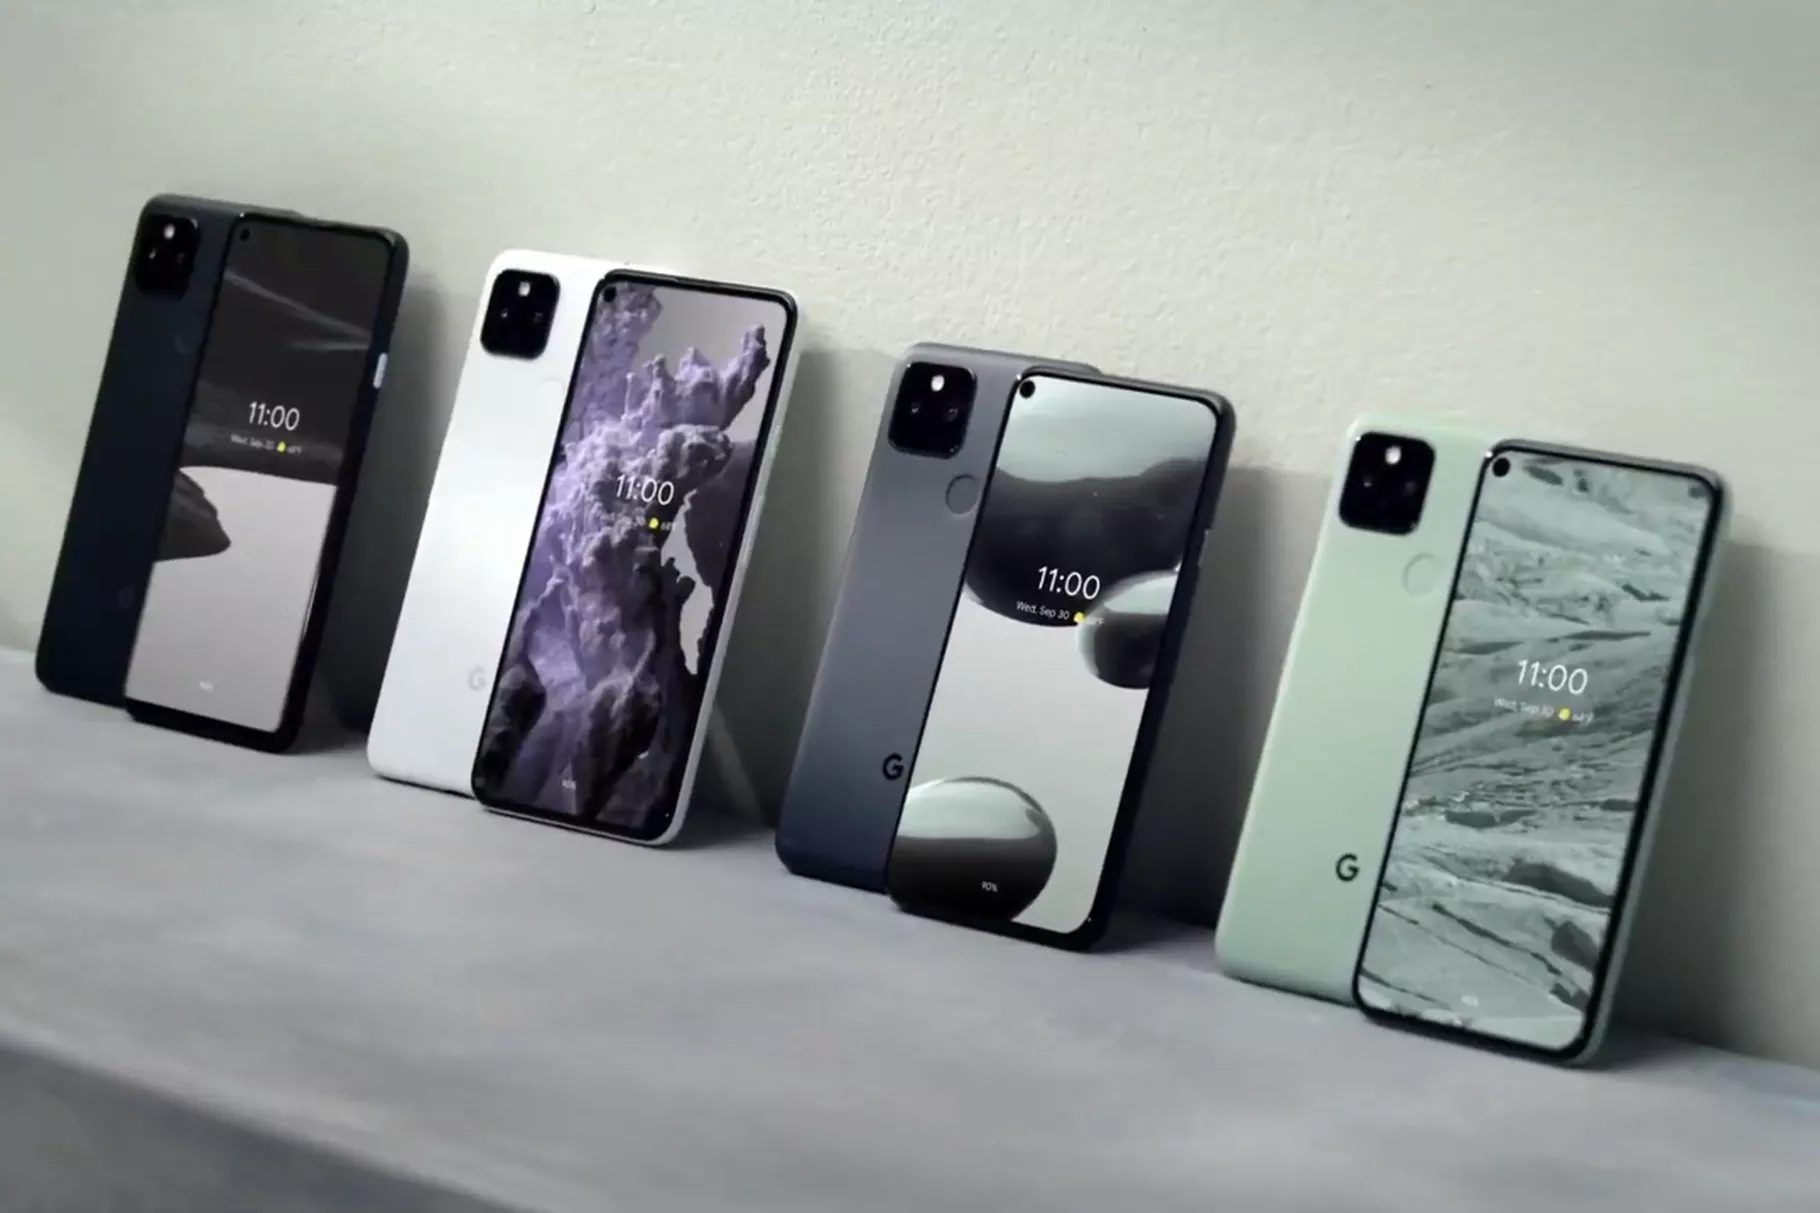 Where Can I Get These Pixel 5 Wallpapers In 2020 Three Phones Pixel Phone Phone